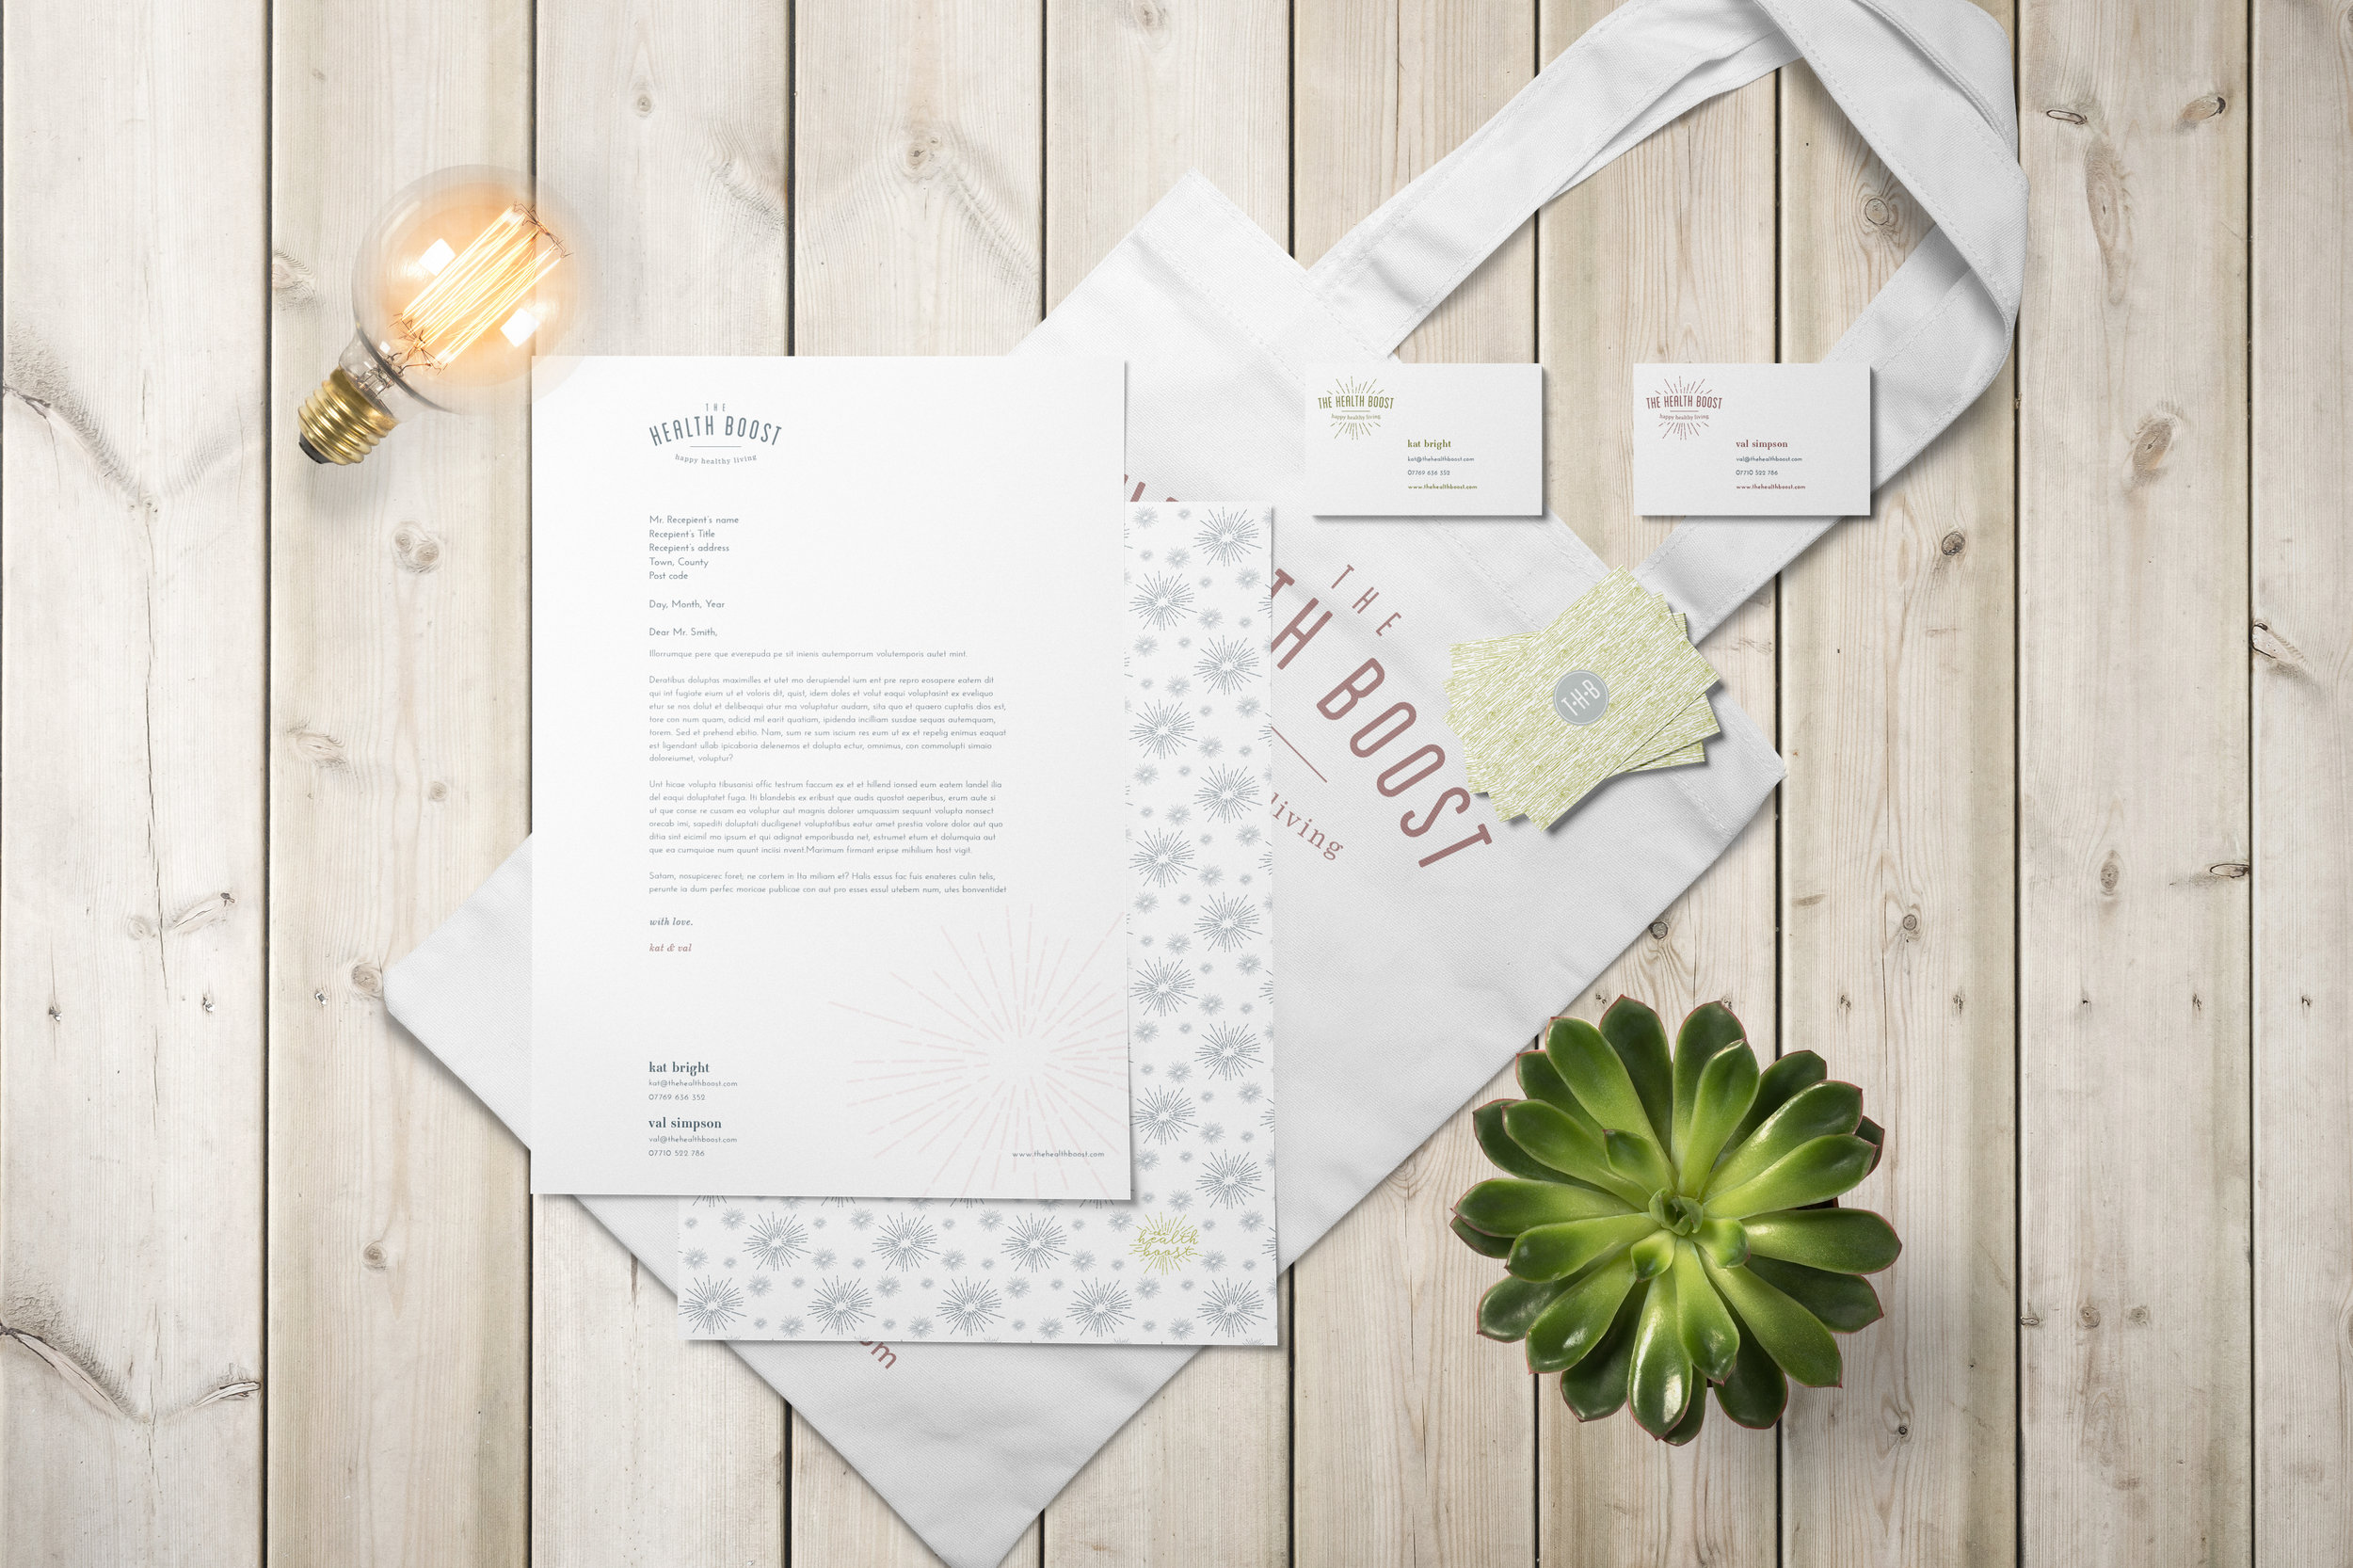 Branding packages for small businesses by Ditto creative, boutique branding agency in Kent